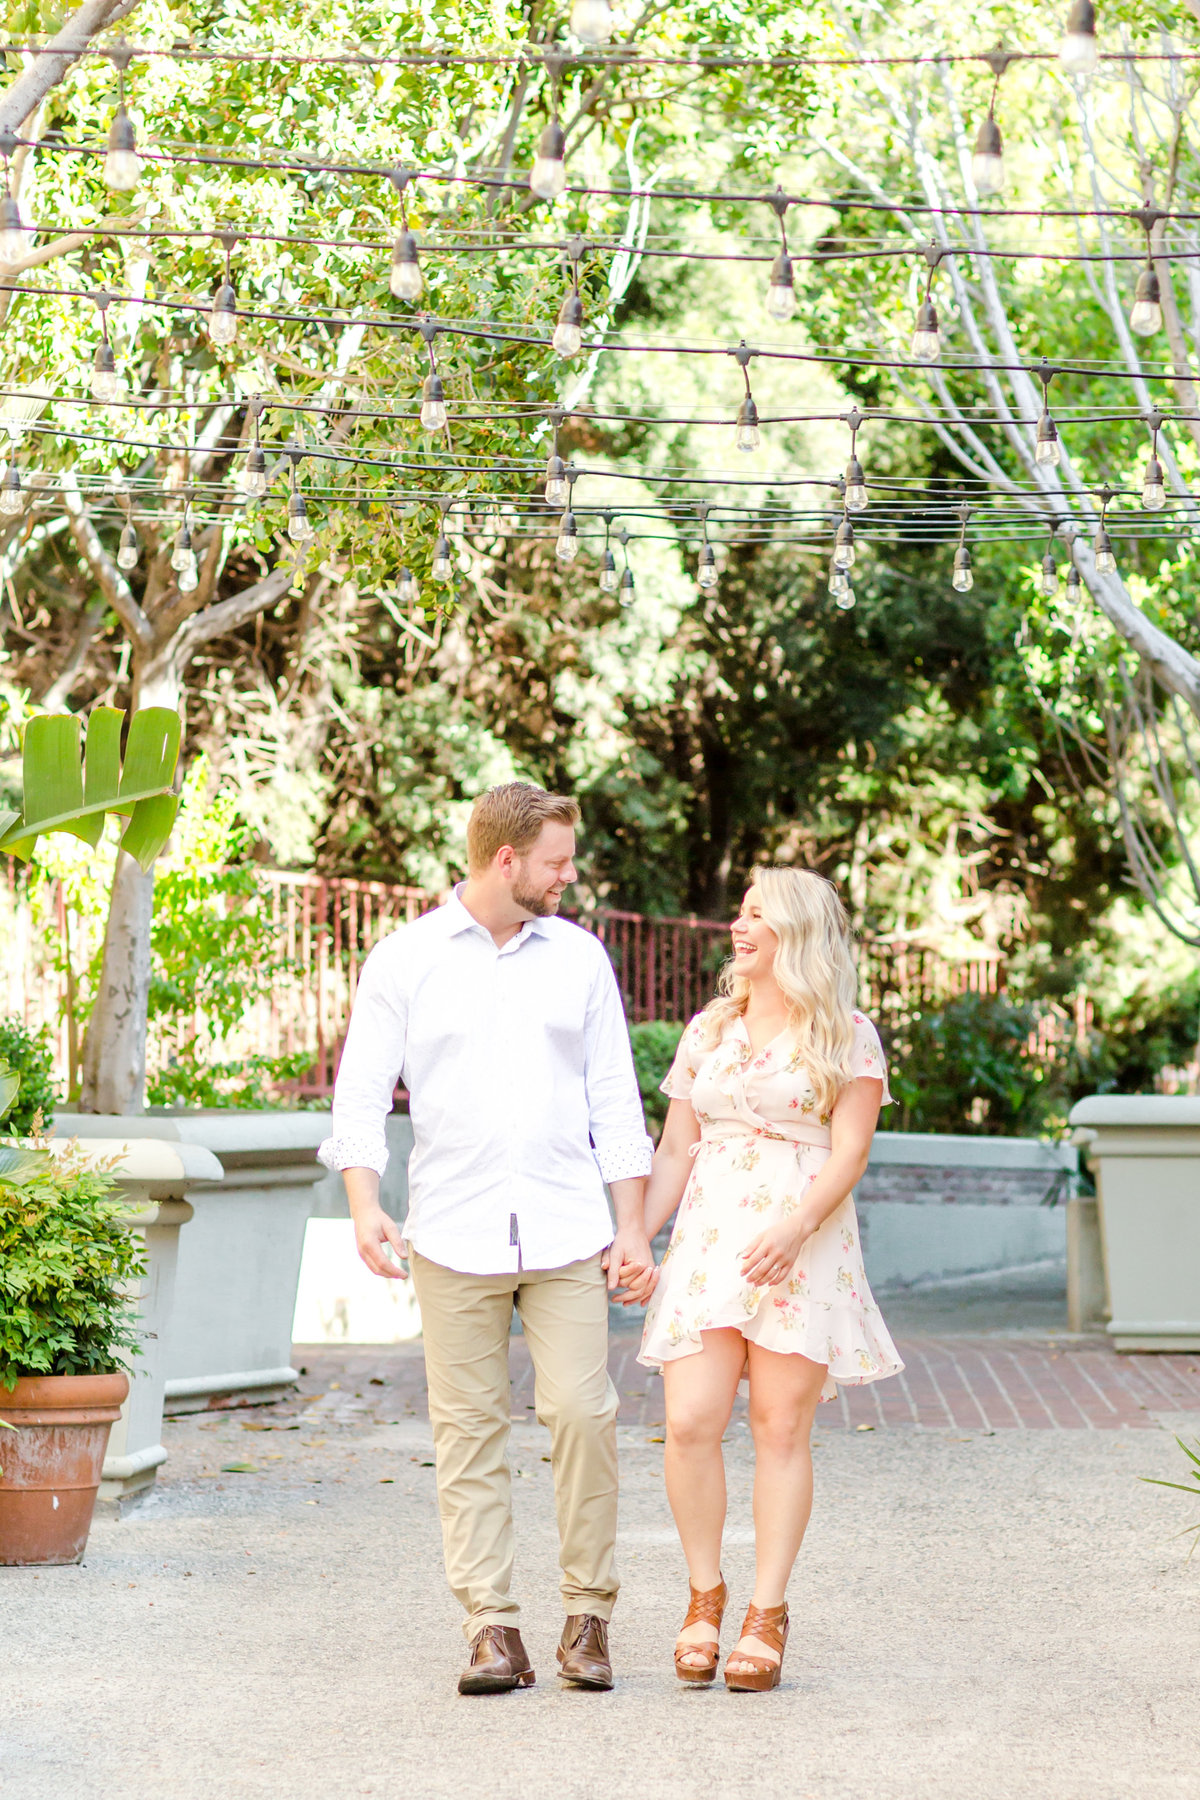 Ryan & Stephanie 2018-2